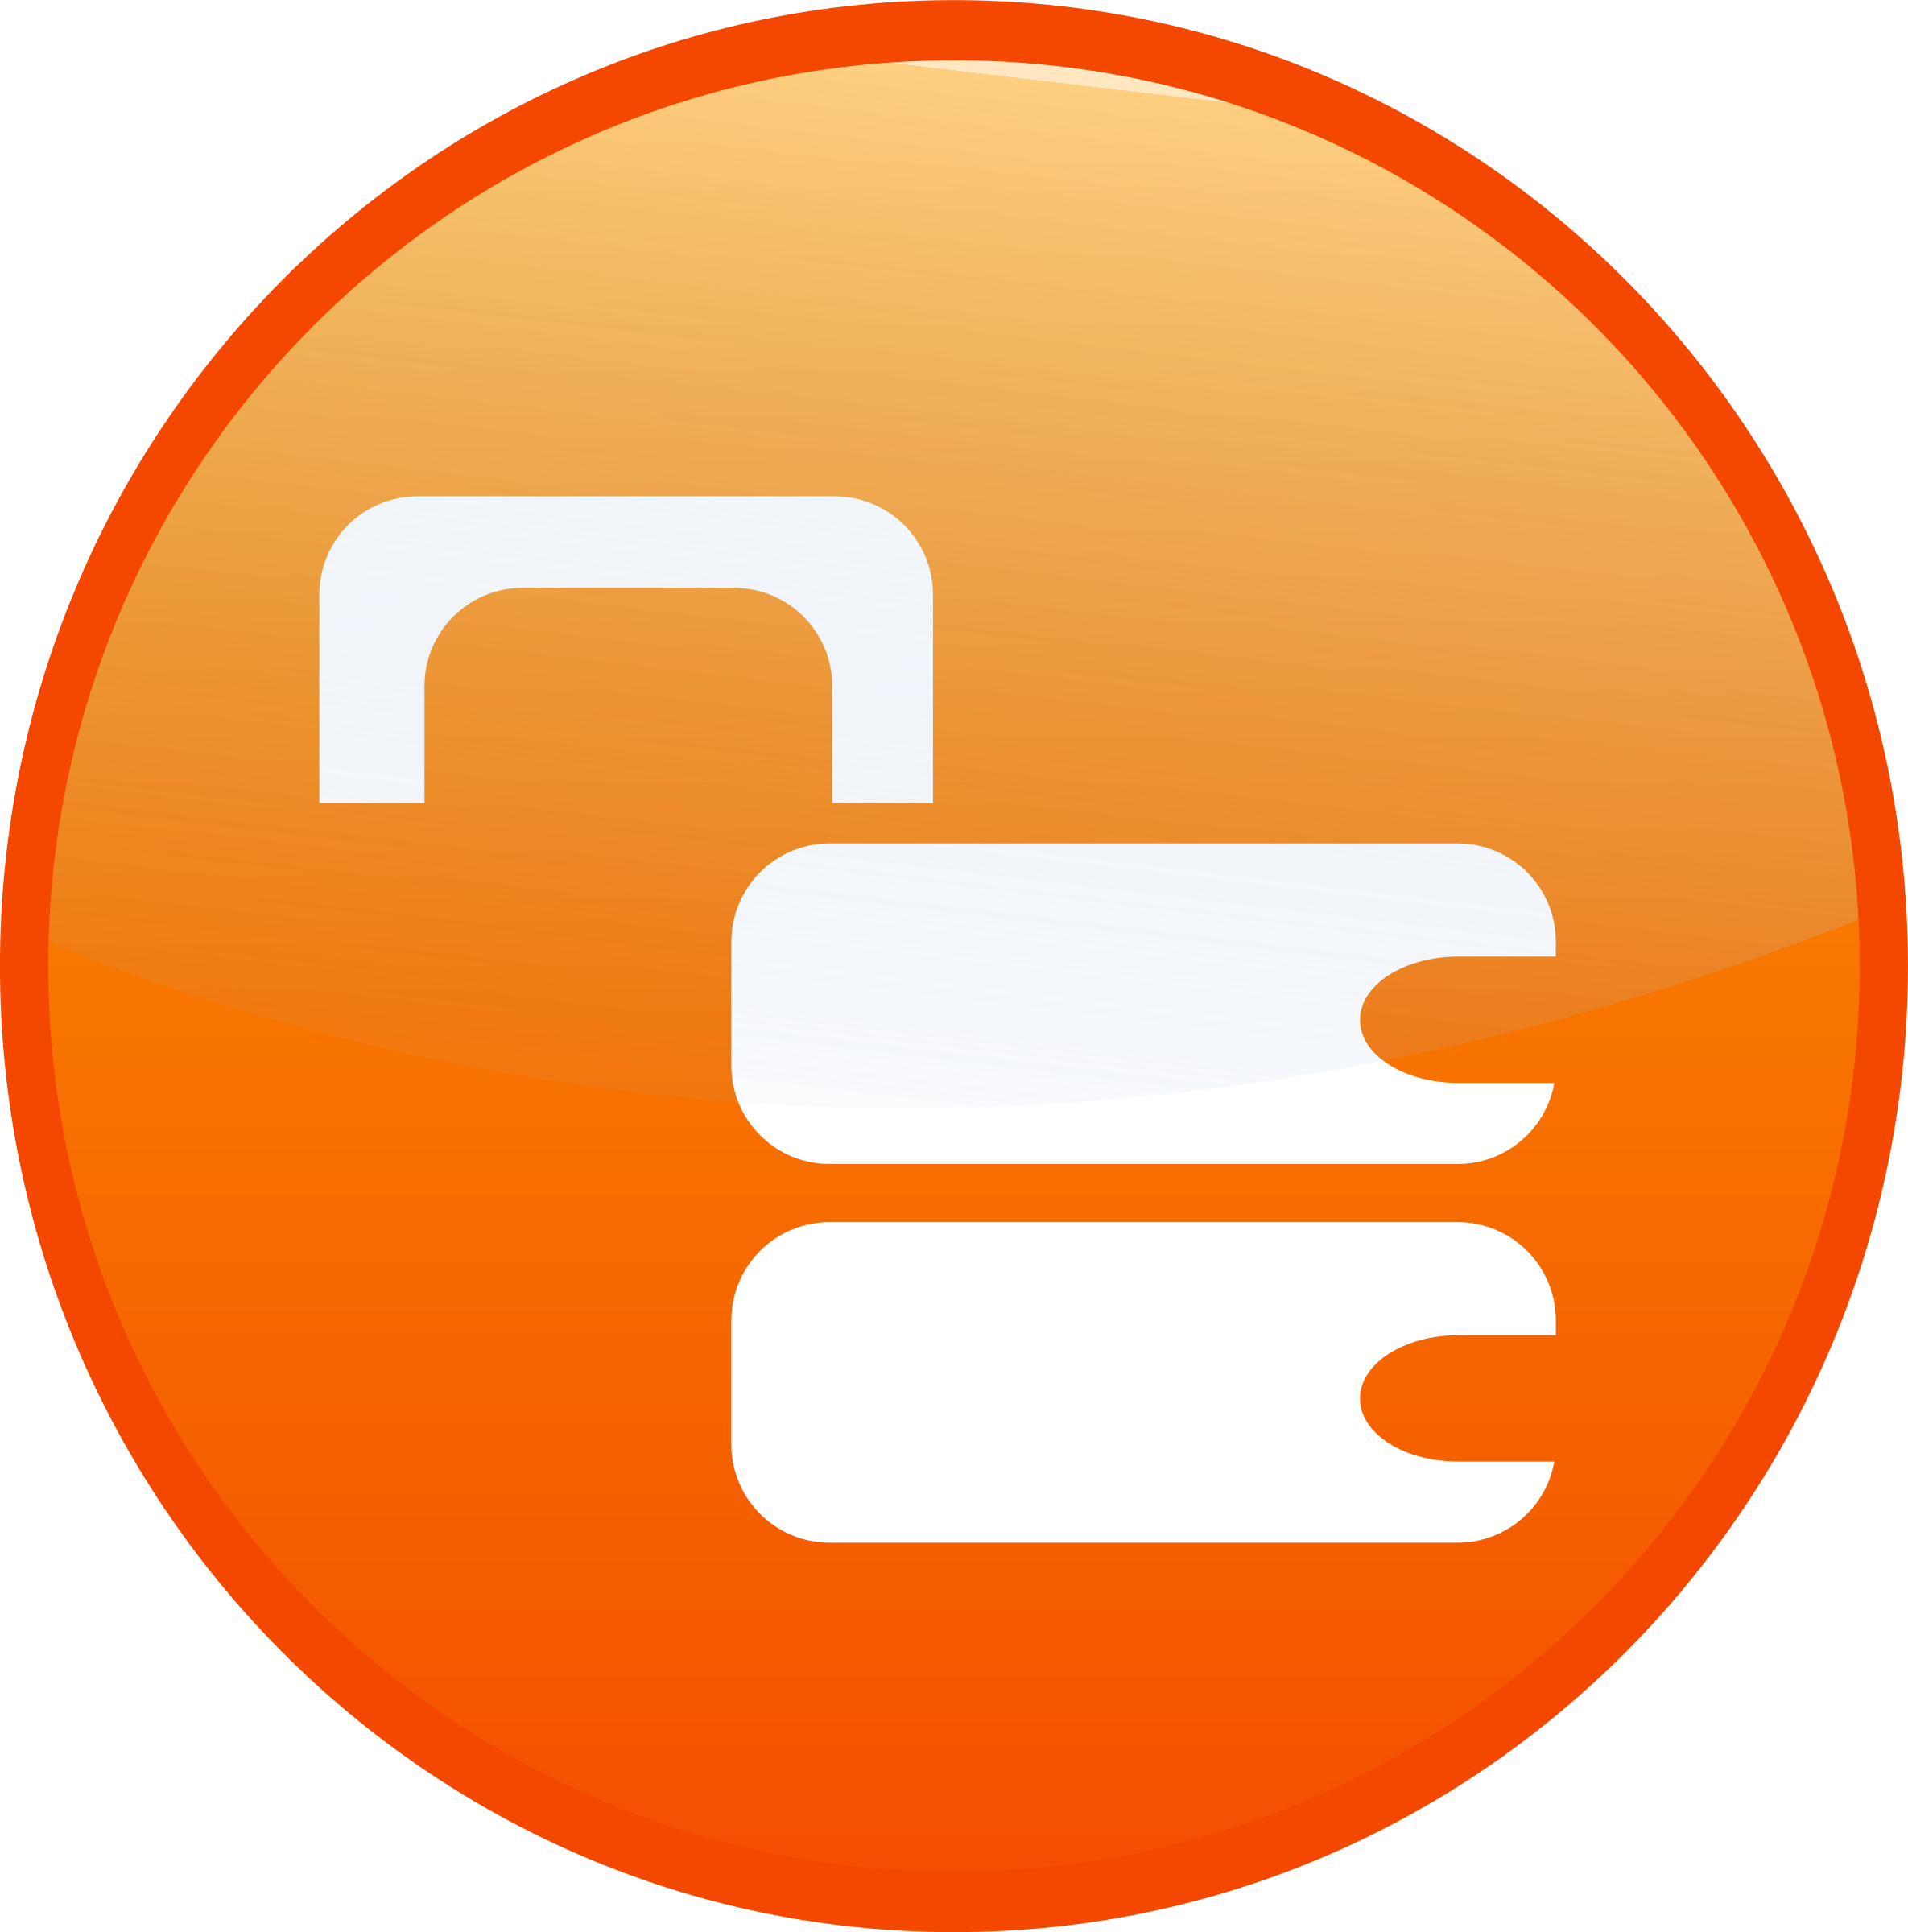 Secure hirschmann remote solution. Lock clipart access